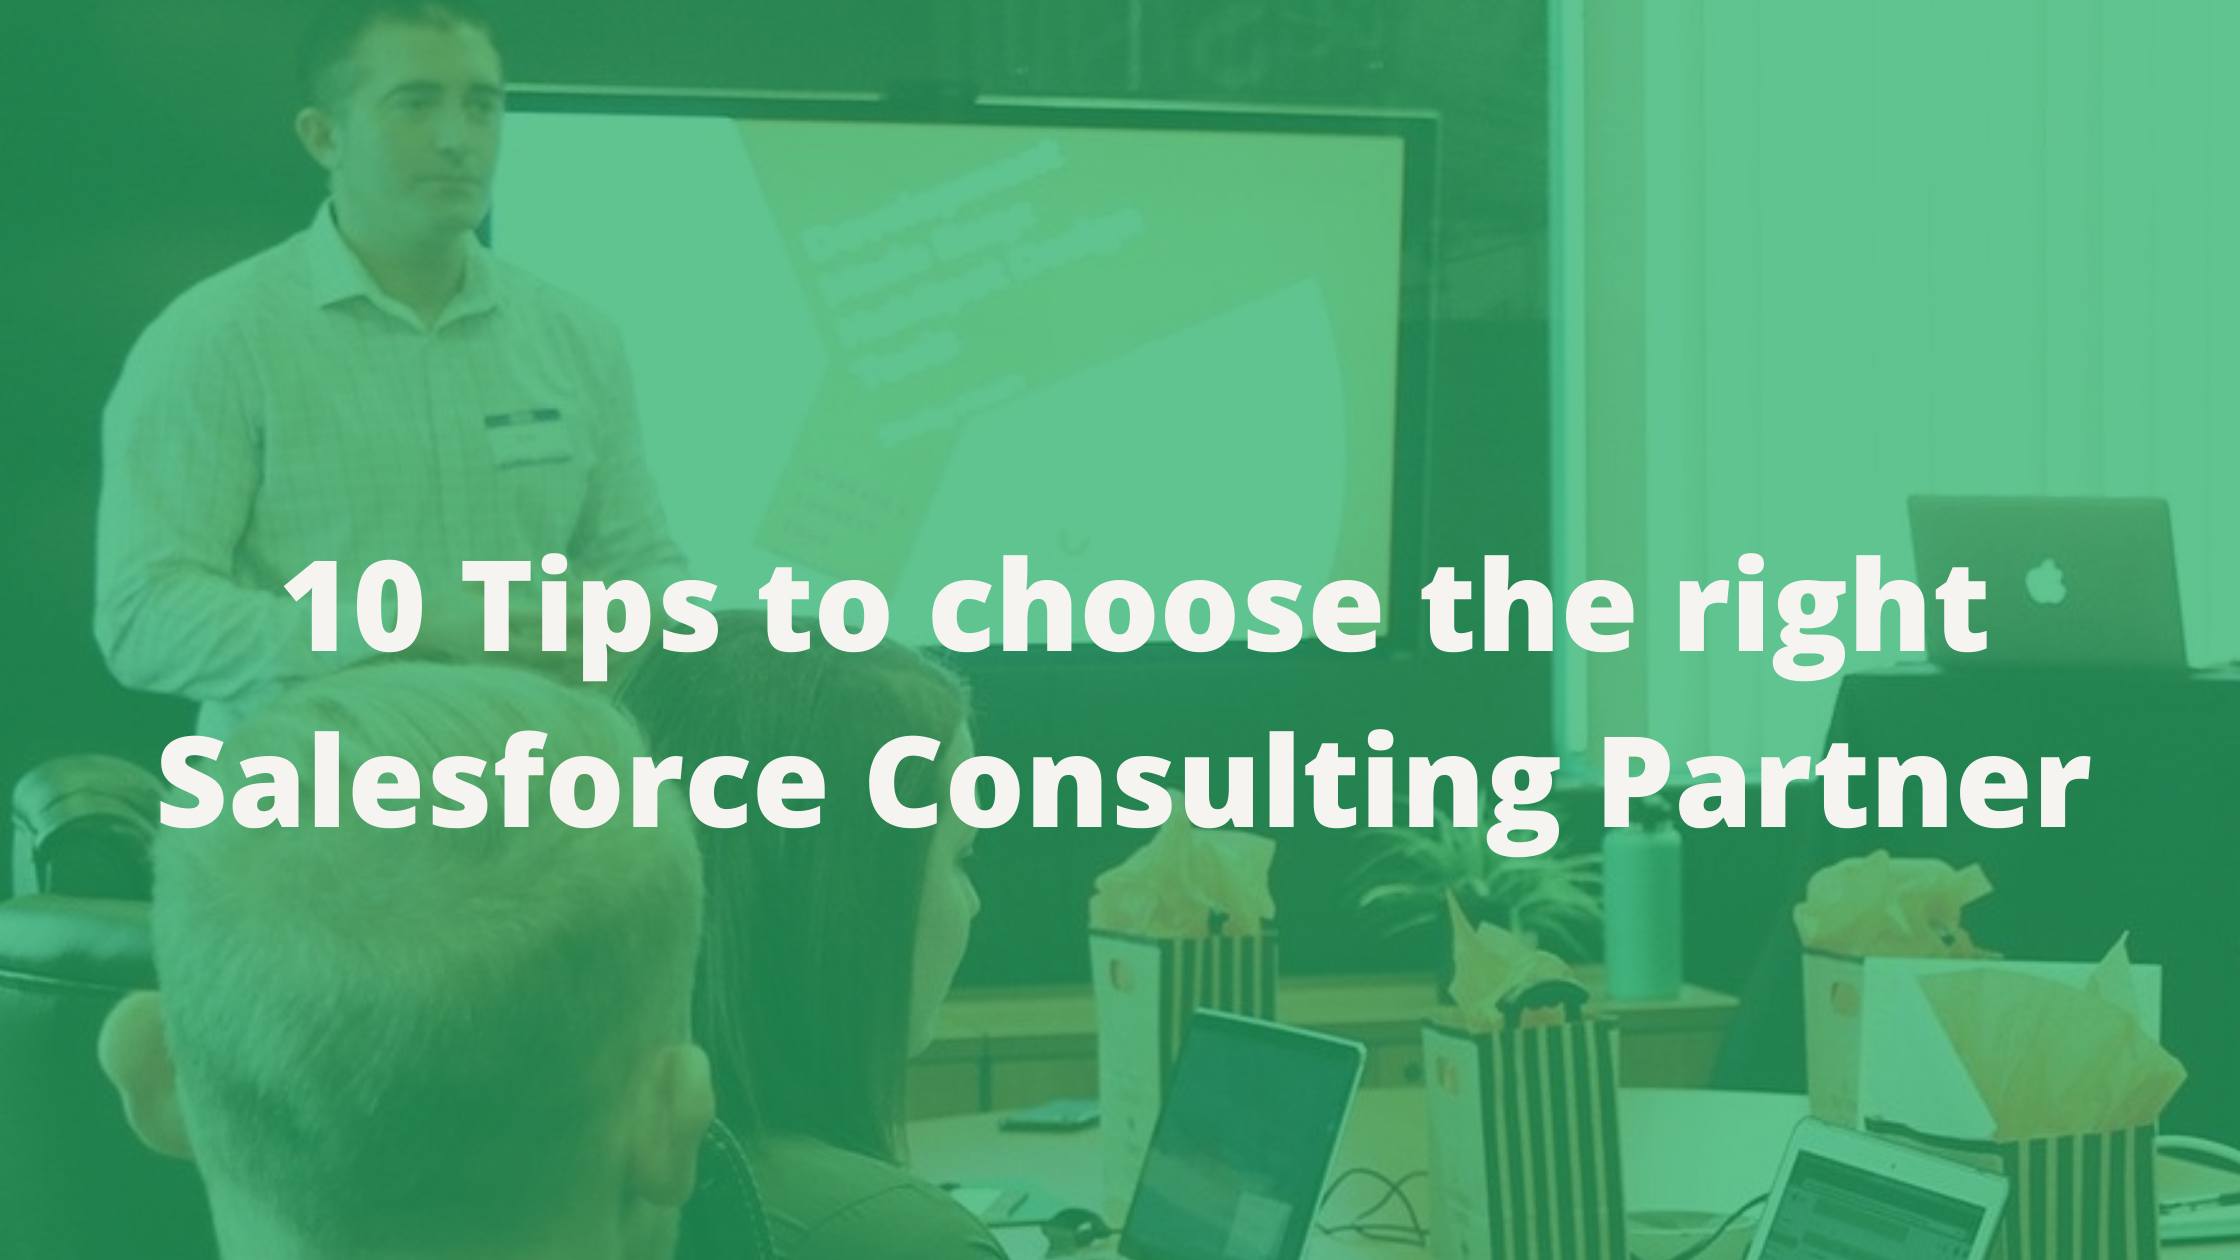 10 Tips for choosing the right Salesforce Consulting Partner